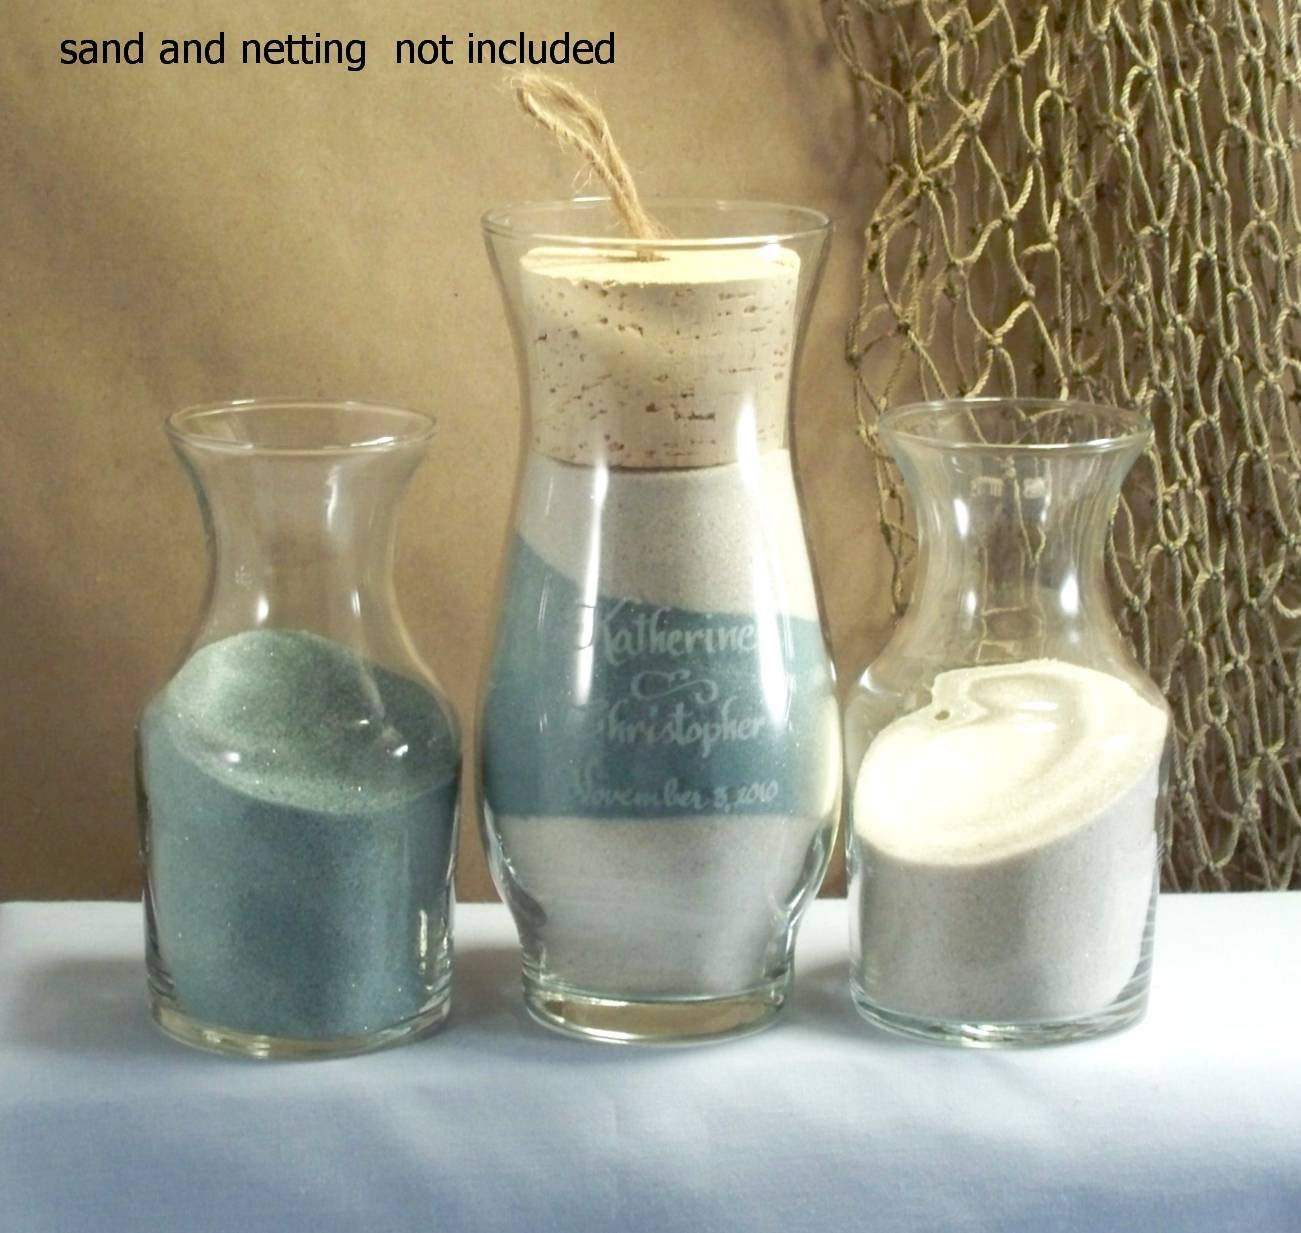 glass heart vase sand ceremony set of amazon com personalized unity sand ceremony style sonora home regarding amazon com personalized unity sand ceremony style sonora home kitchen